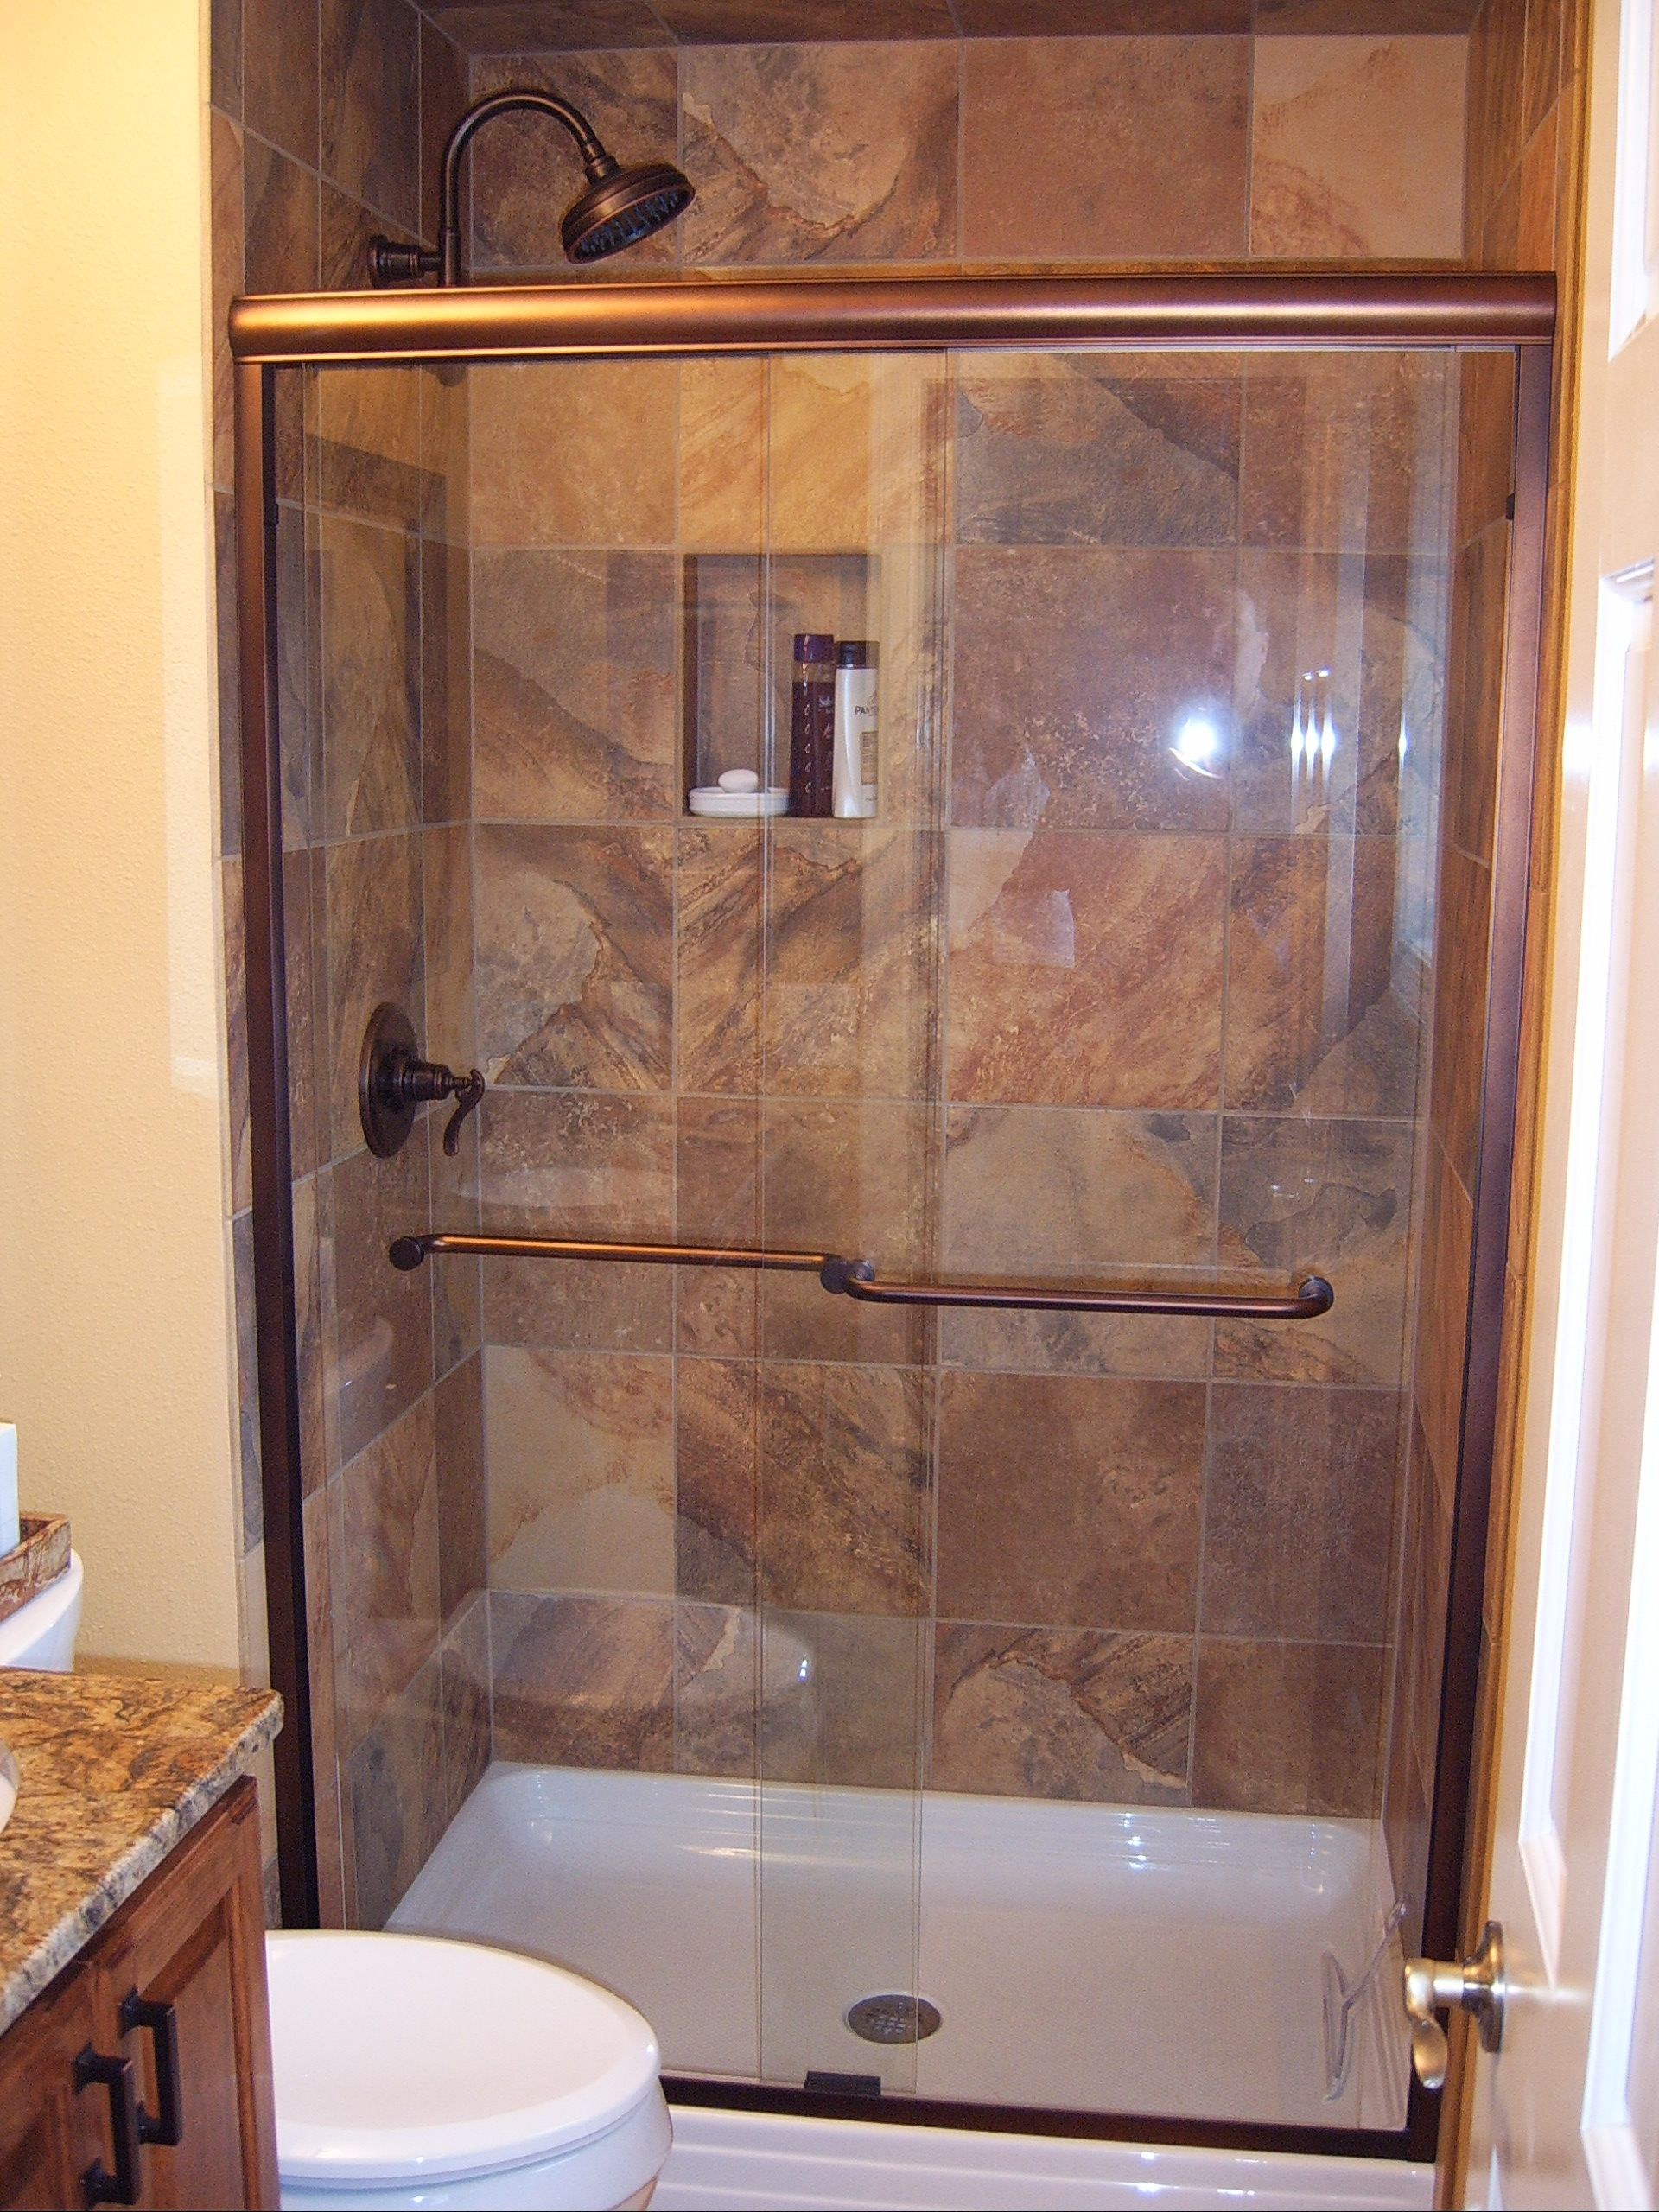 Besf Of Ideas Image Bathroom Remodel How To Remodel A Modern New Redoing A Small Bathroom Inspiration Design